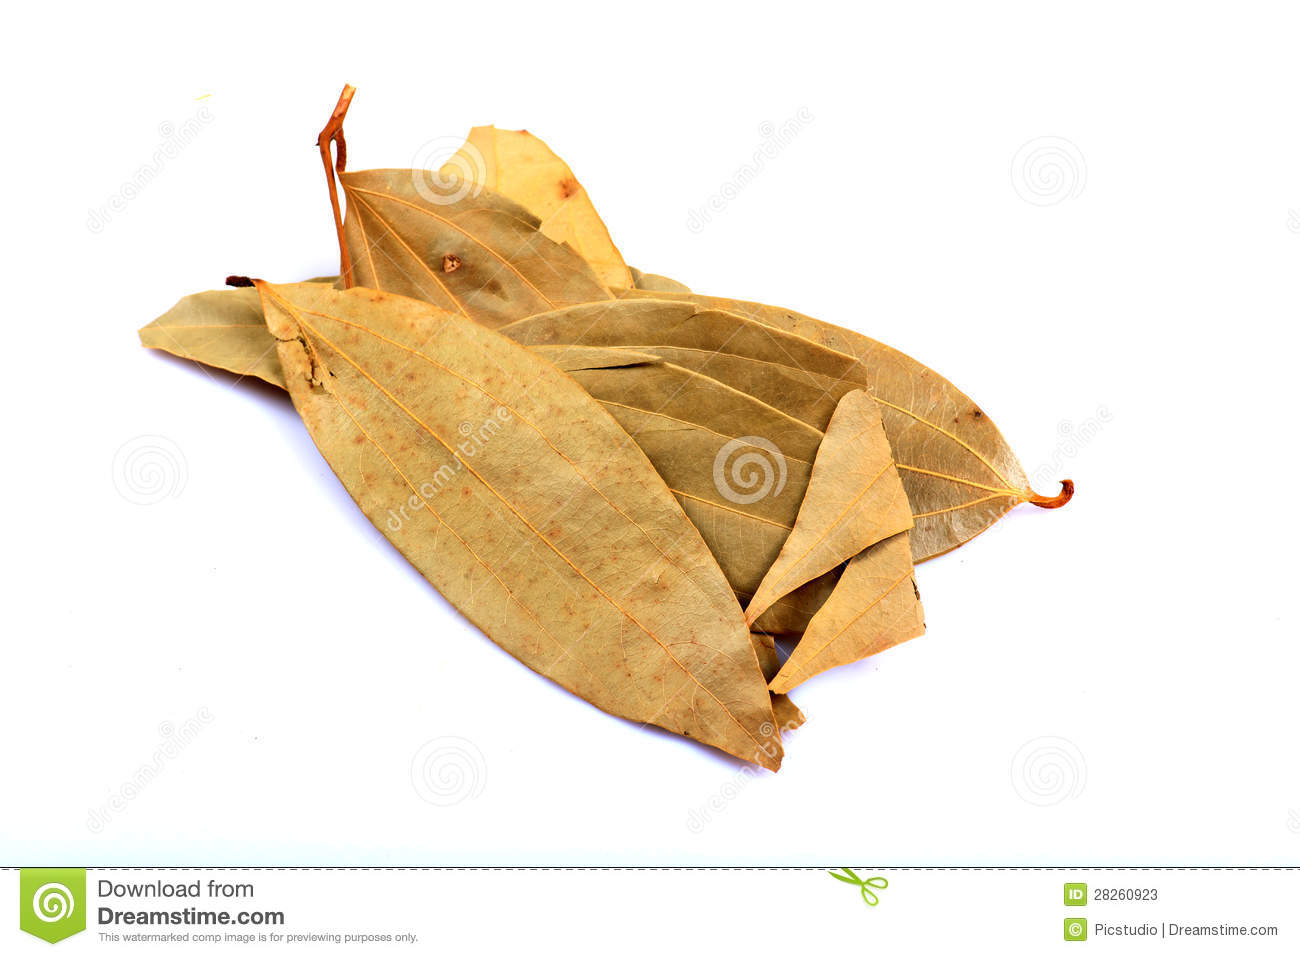 Bay leaves stock photos image 28260923 - Cook bay leaves ...